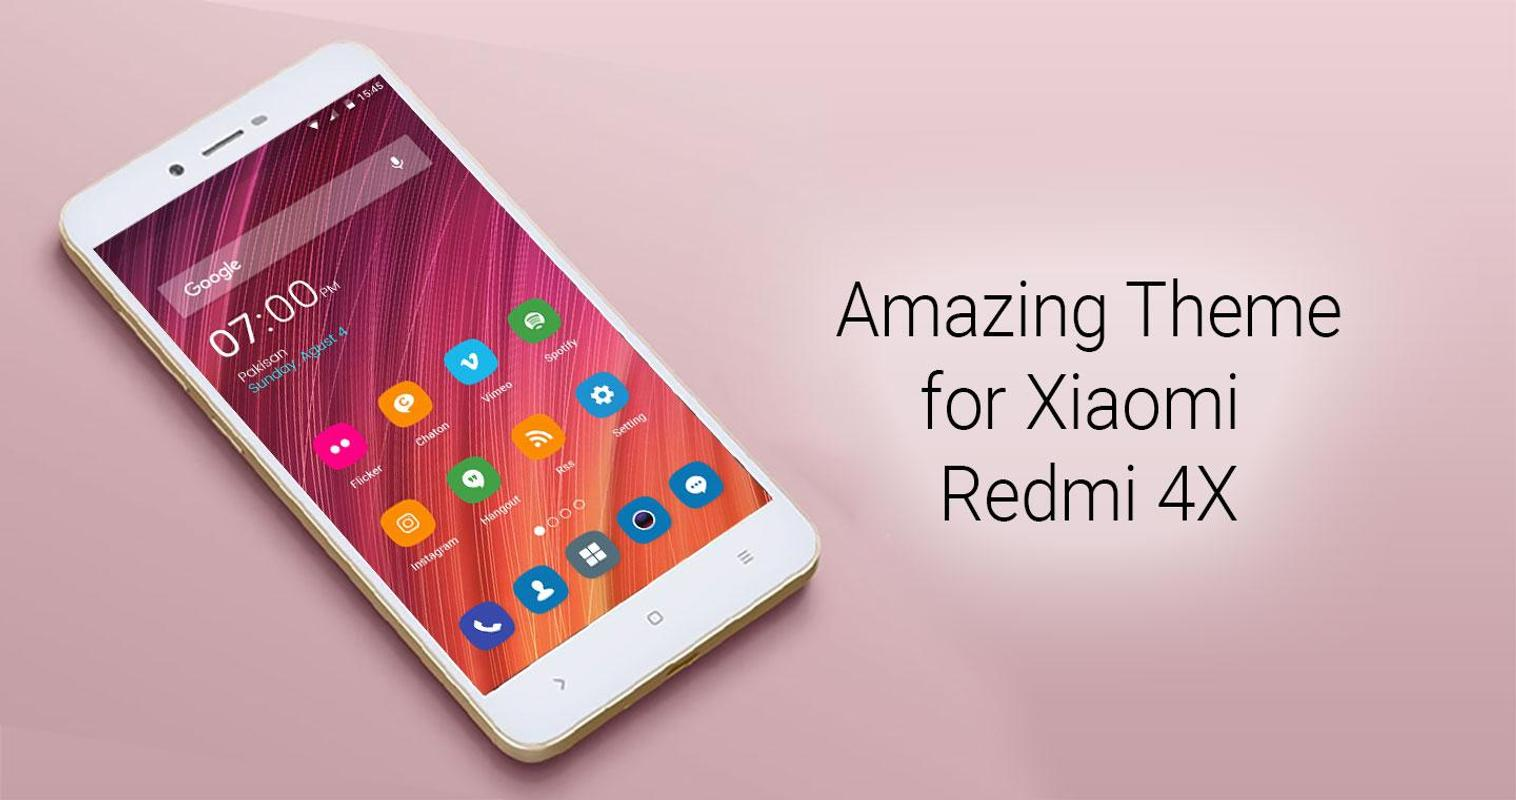 Theme For Xiaomi Redmi Note 4 For Android: Theme For Xiaomi Redmi Note 4X For Android